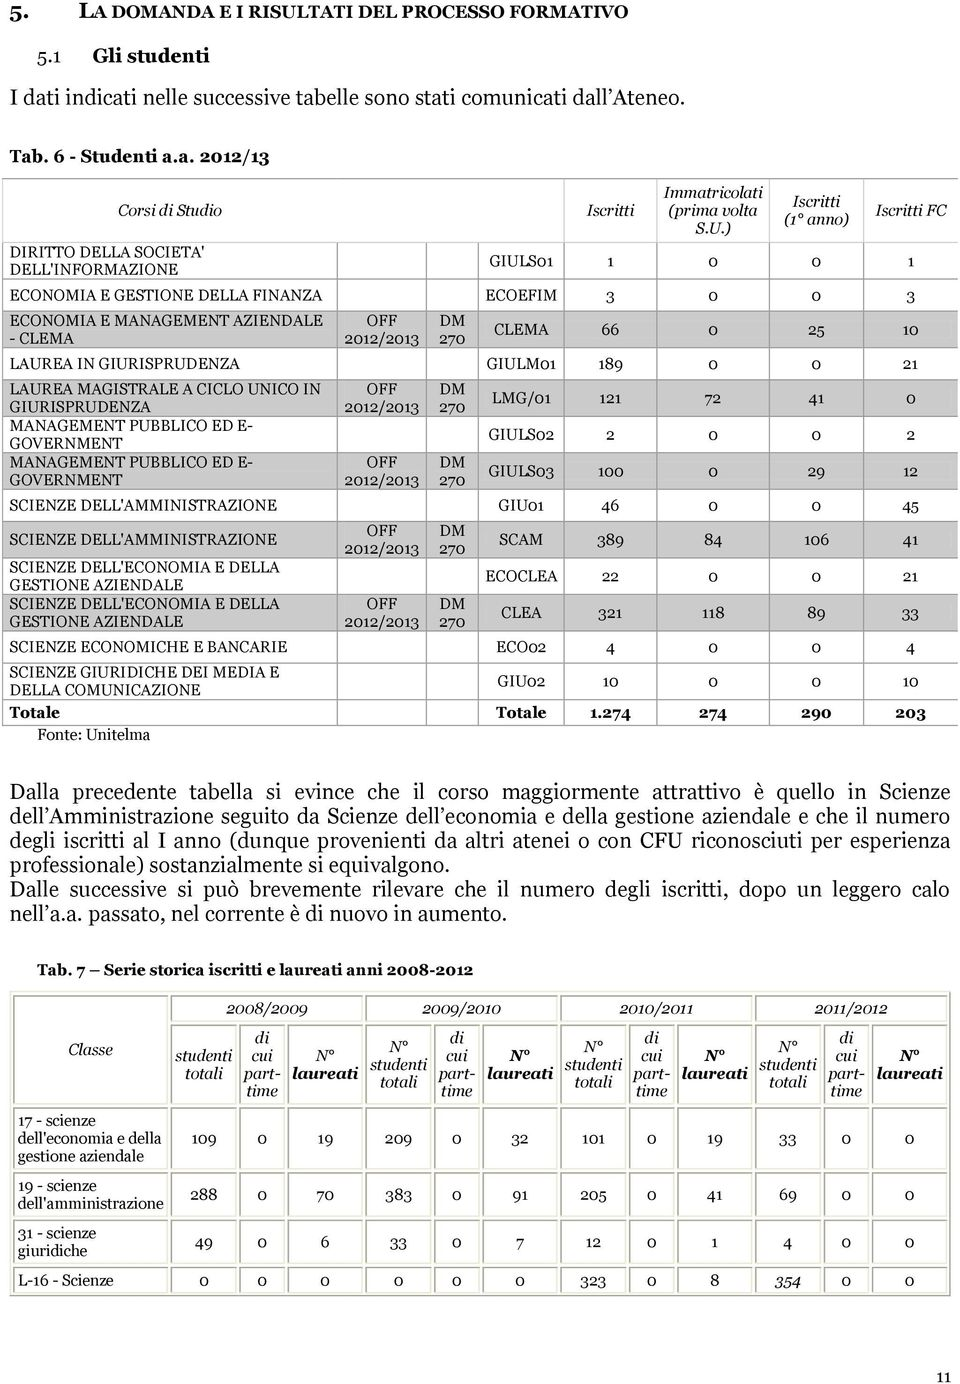 GIURISPRUDENZA GIULM01 189 0 0 21 LAUREA MAGISTRALE A CICLO UNICO IN GIURISPRUDENZA MANAGEMENT PUBBLICO ED E- GOVERNMENT MANAGEMENT PUBBLICO ED E- GOVERNMENT OFF 2012/2013 OFF 2012/2013 DM 270 DM 270